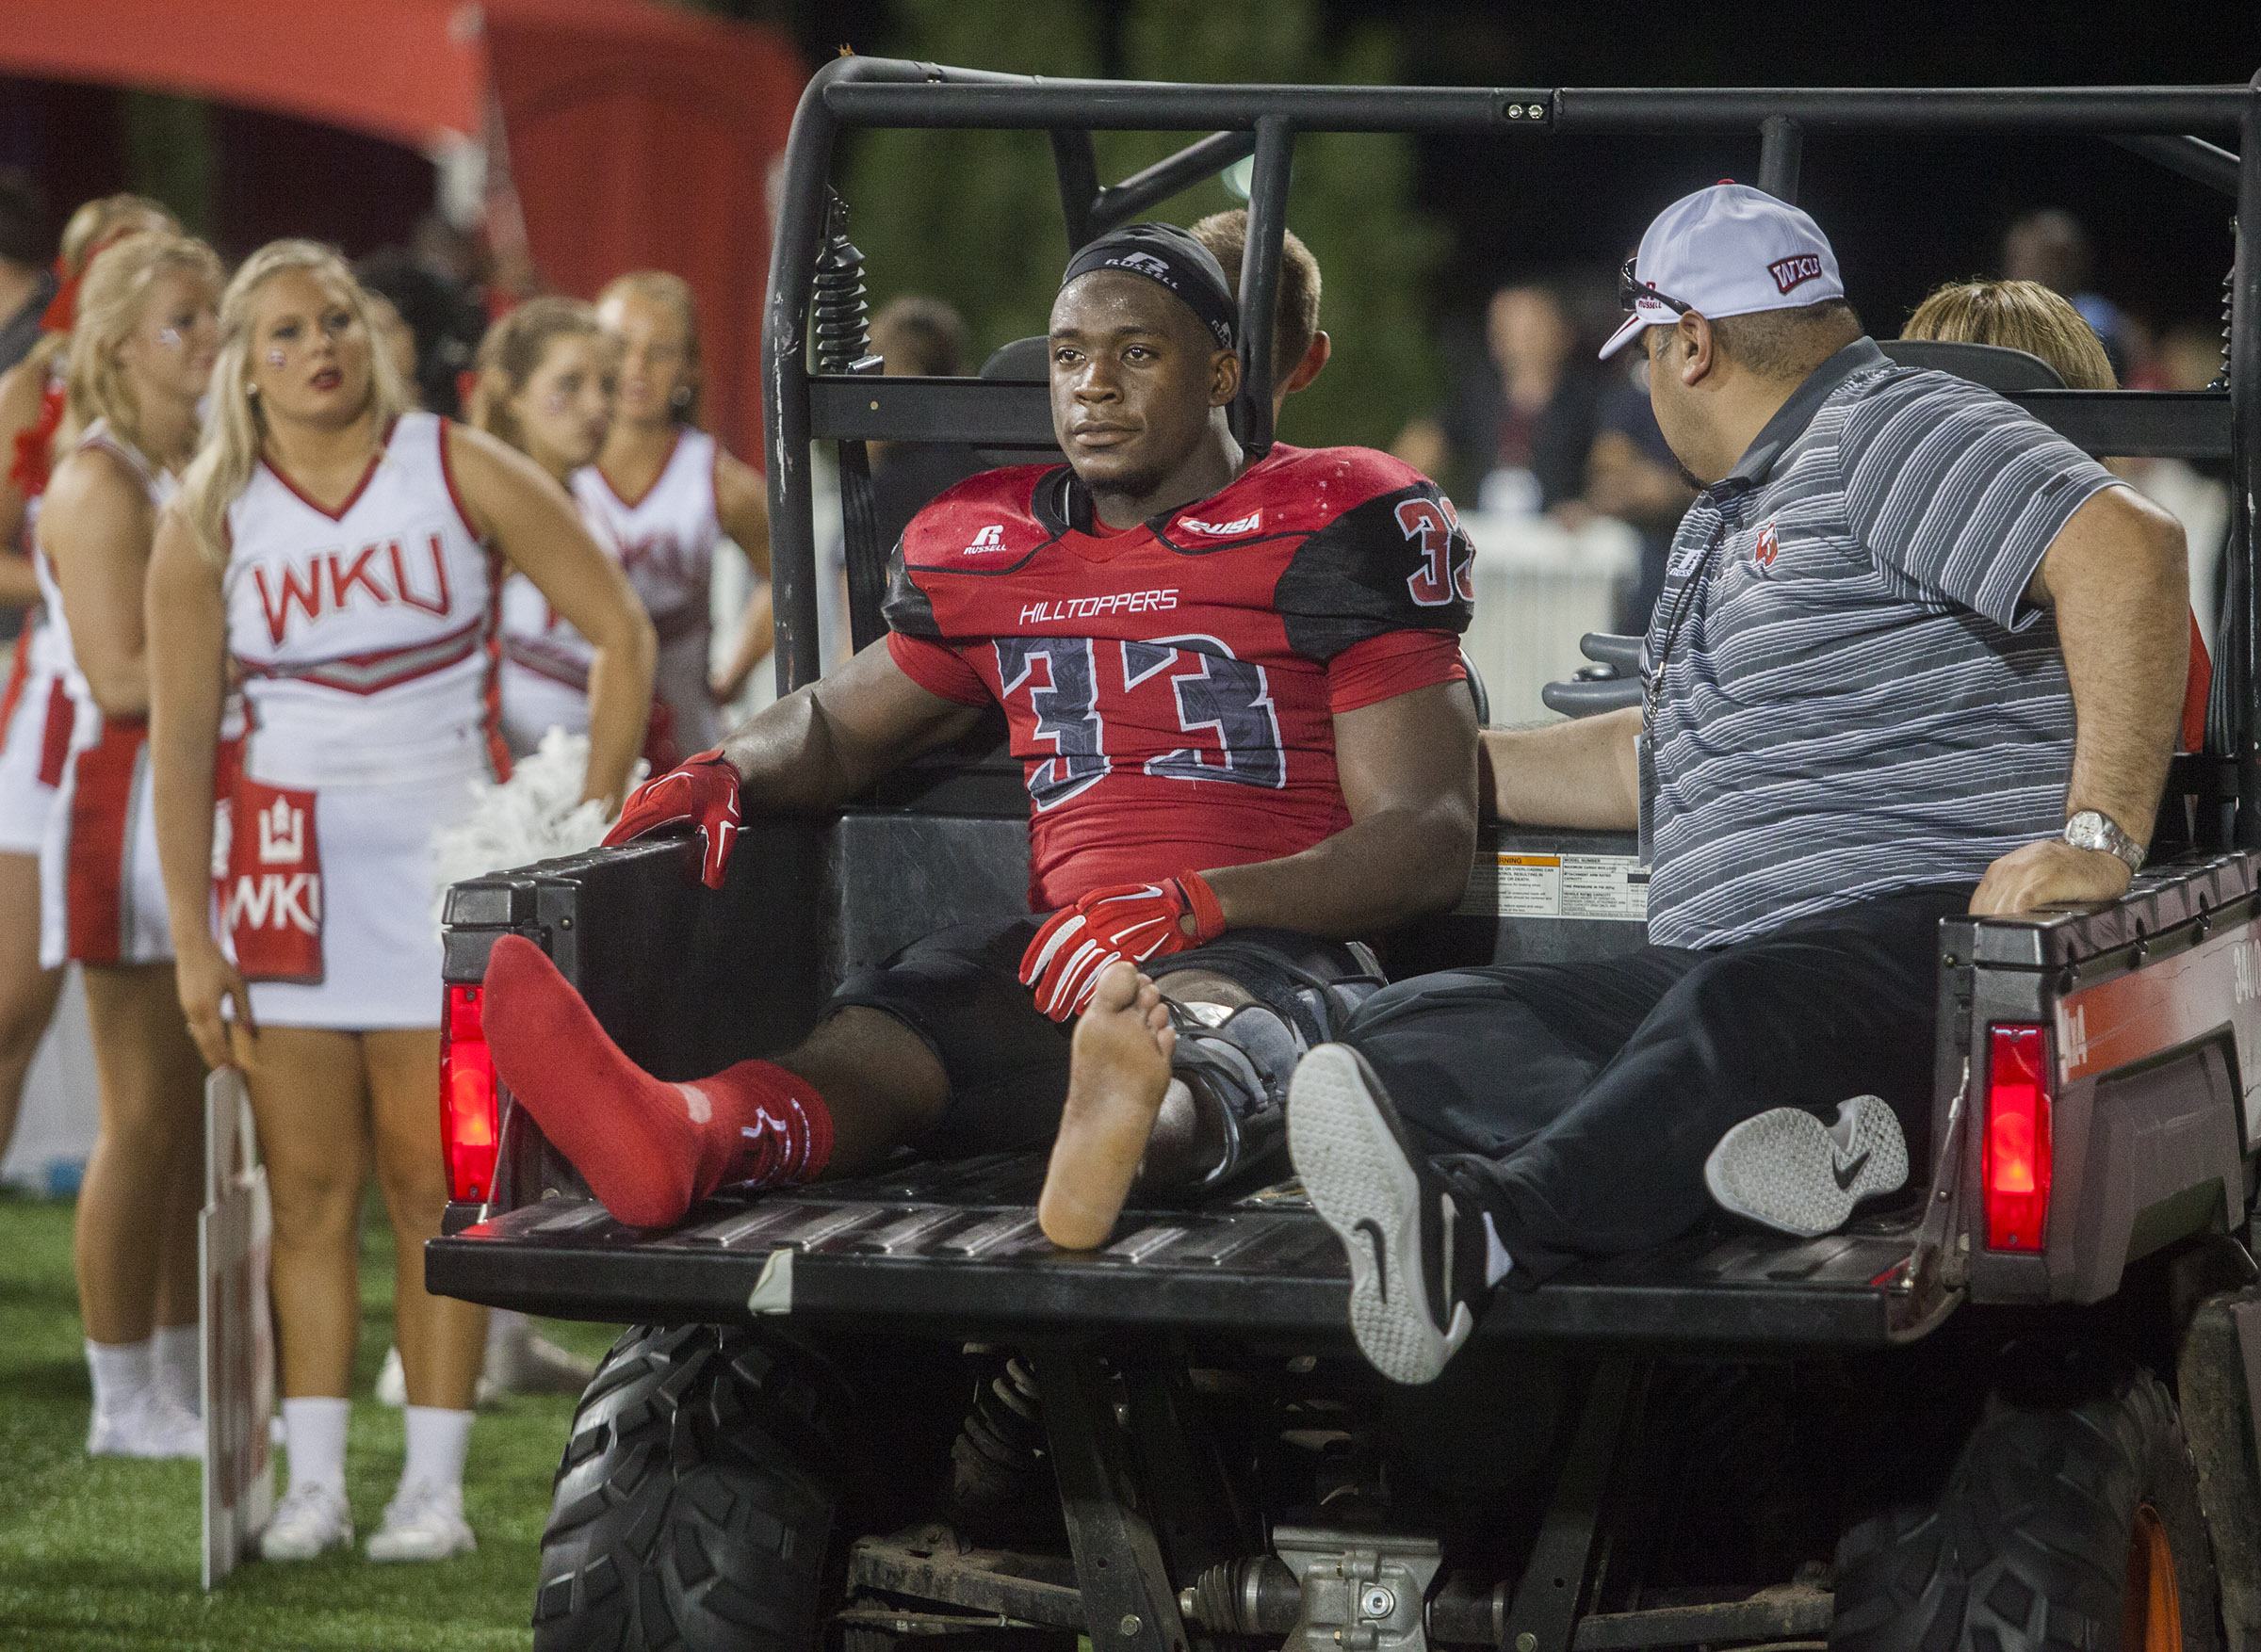 Western Kentucky running back Leon Allen is taken out of the stadium after a leg injury during Western Kentucky's 41-38 win over Louisiana Tech in an NCAA college football game Thursday, Sept. 10, 2015, in Bowling Green, Ky. (Austin Anthony/Daily News via